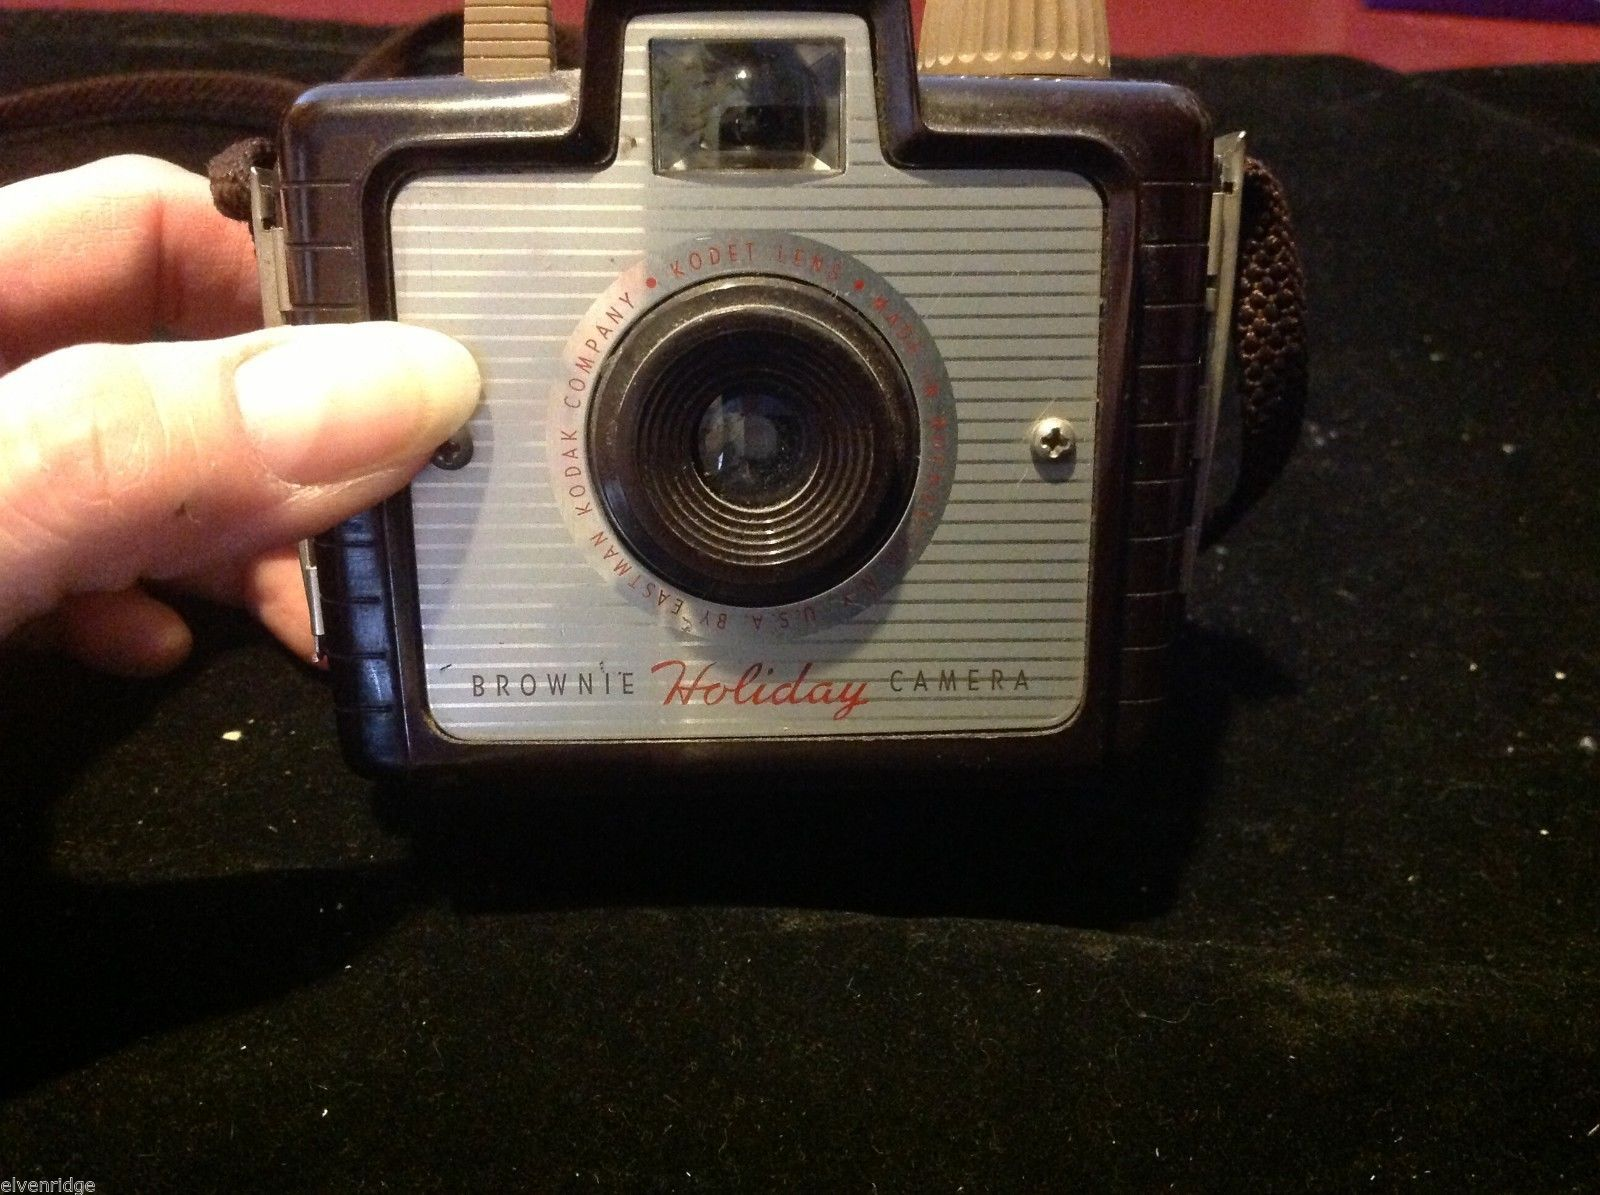 brownie vintage holiday camera by Kodak